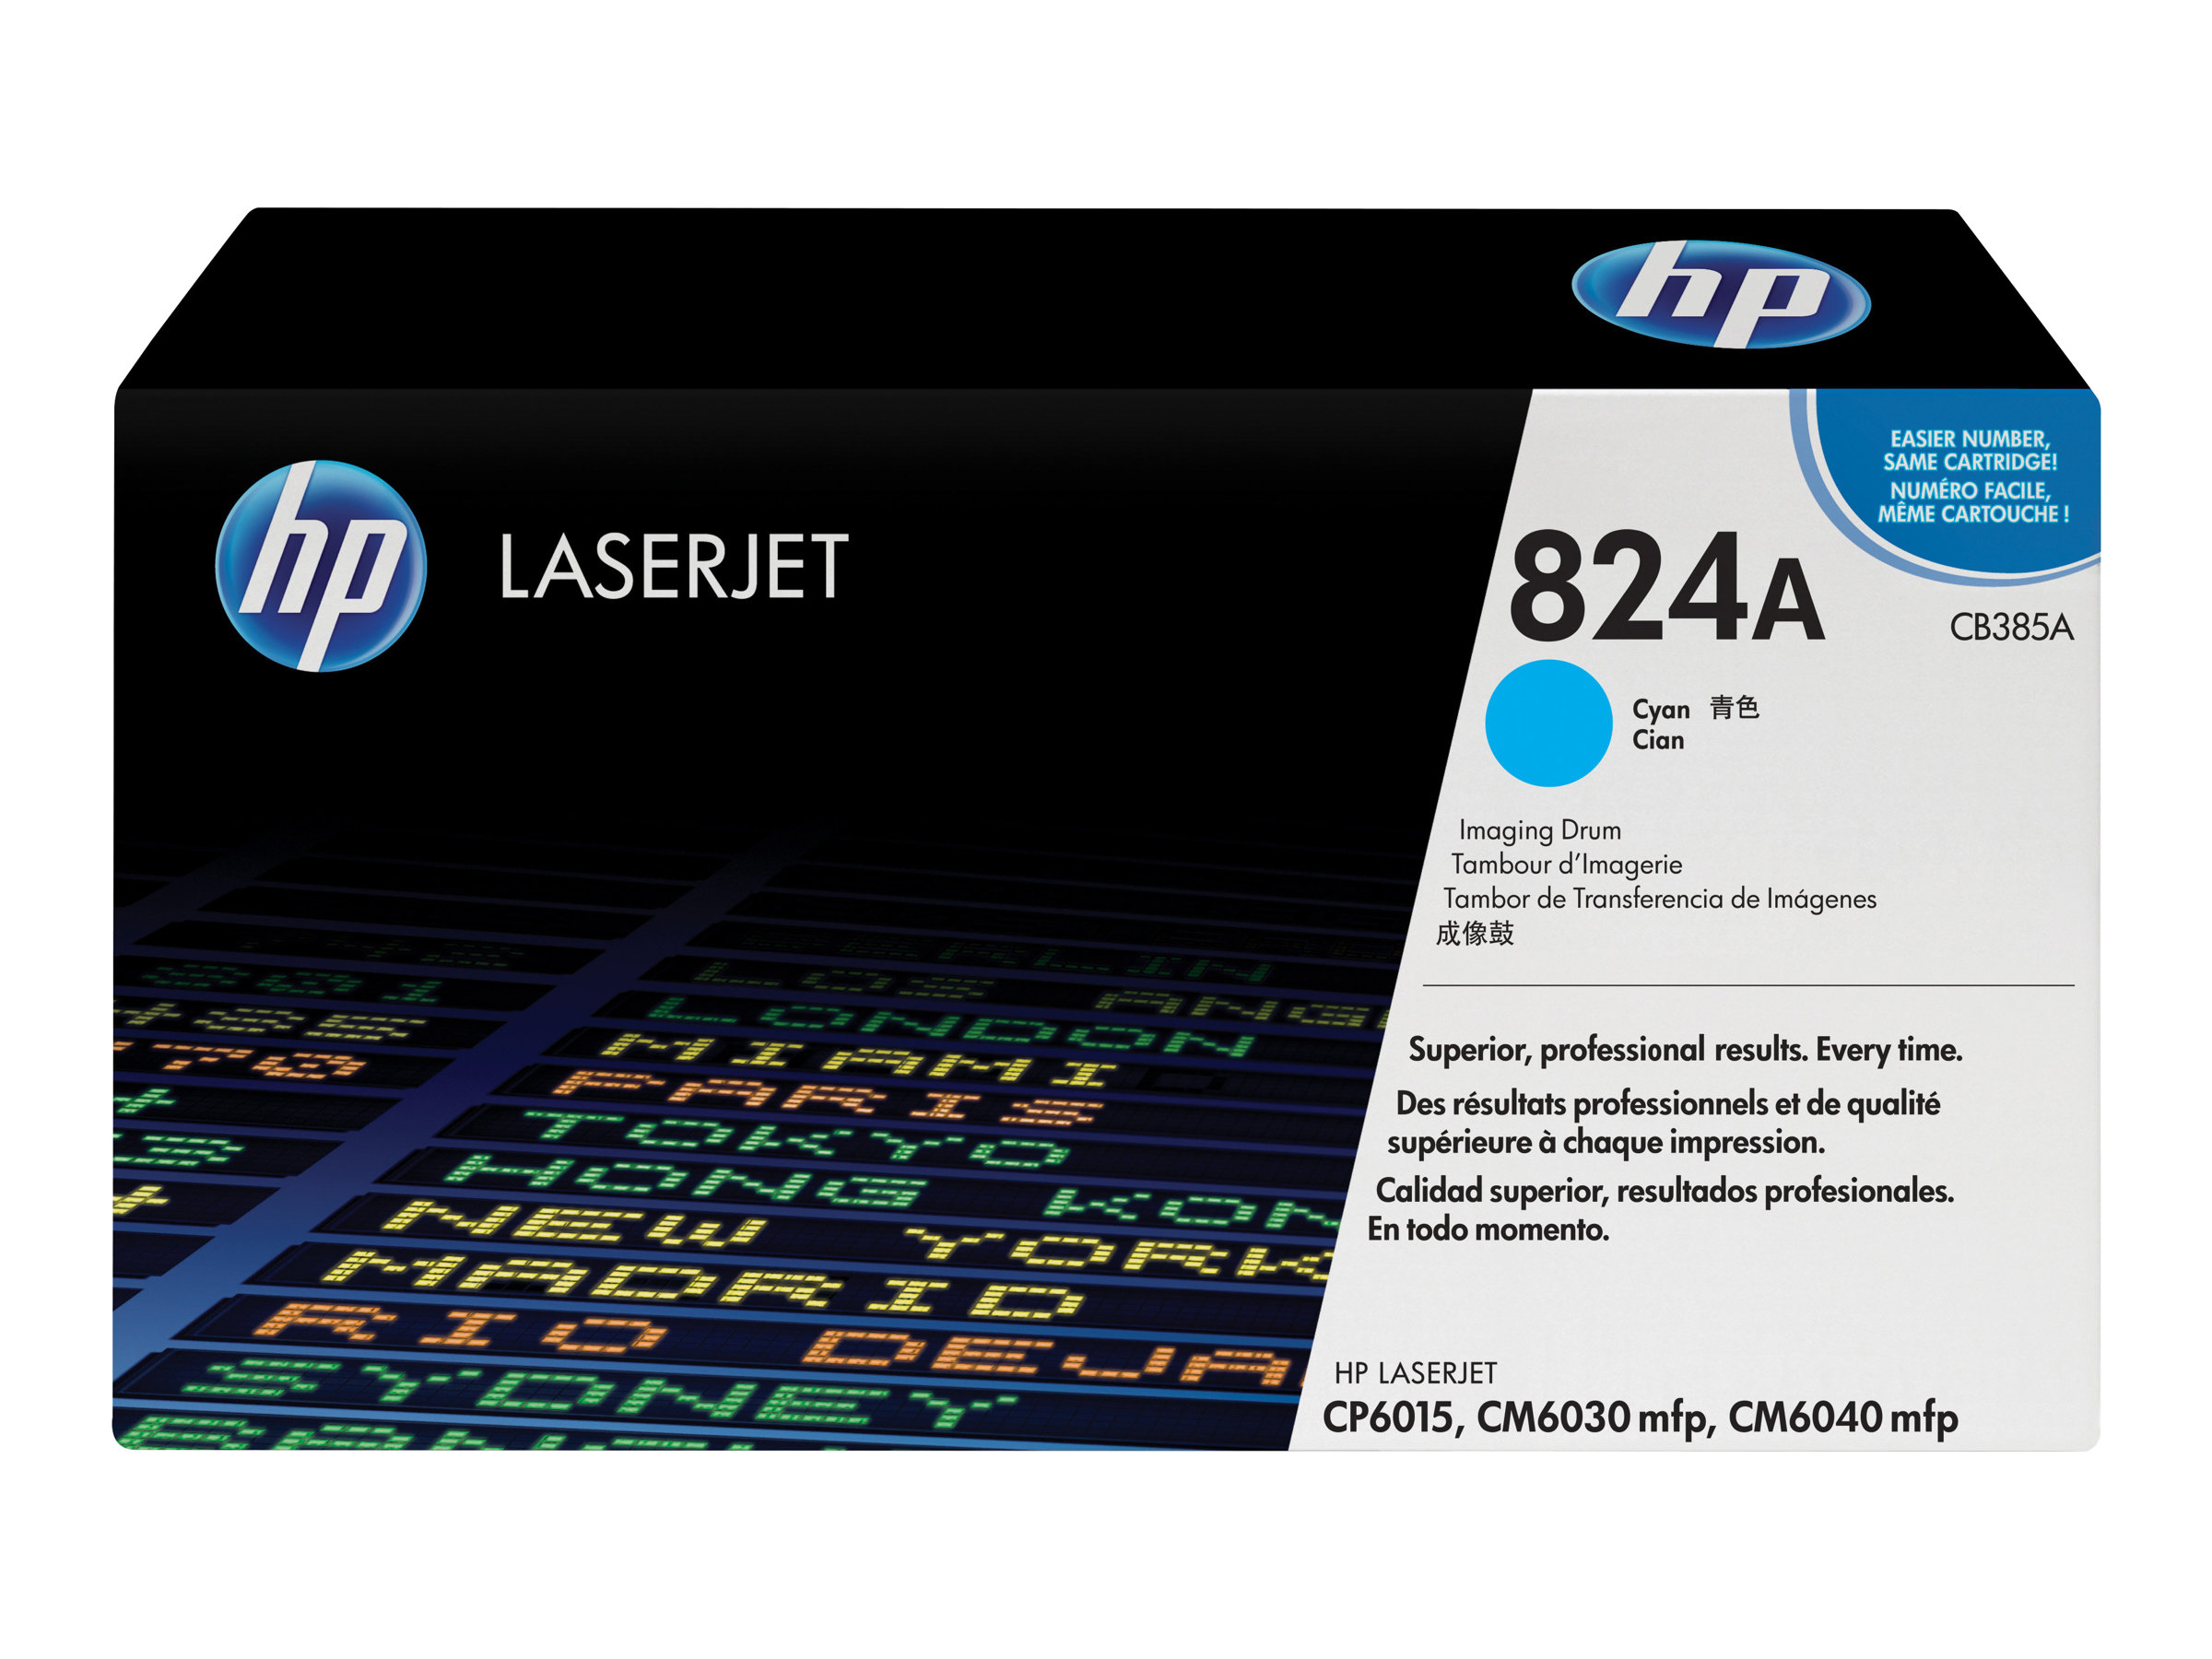 HP 824A - 1 - Cyan - Trommel-Kit - für Color LaserJet CL2000, CM6030, CM6040, CP6015